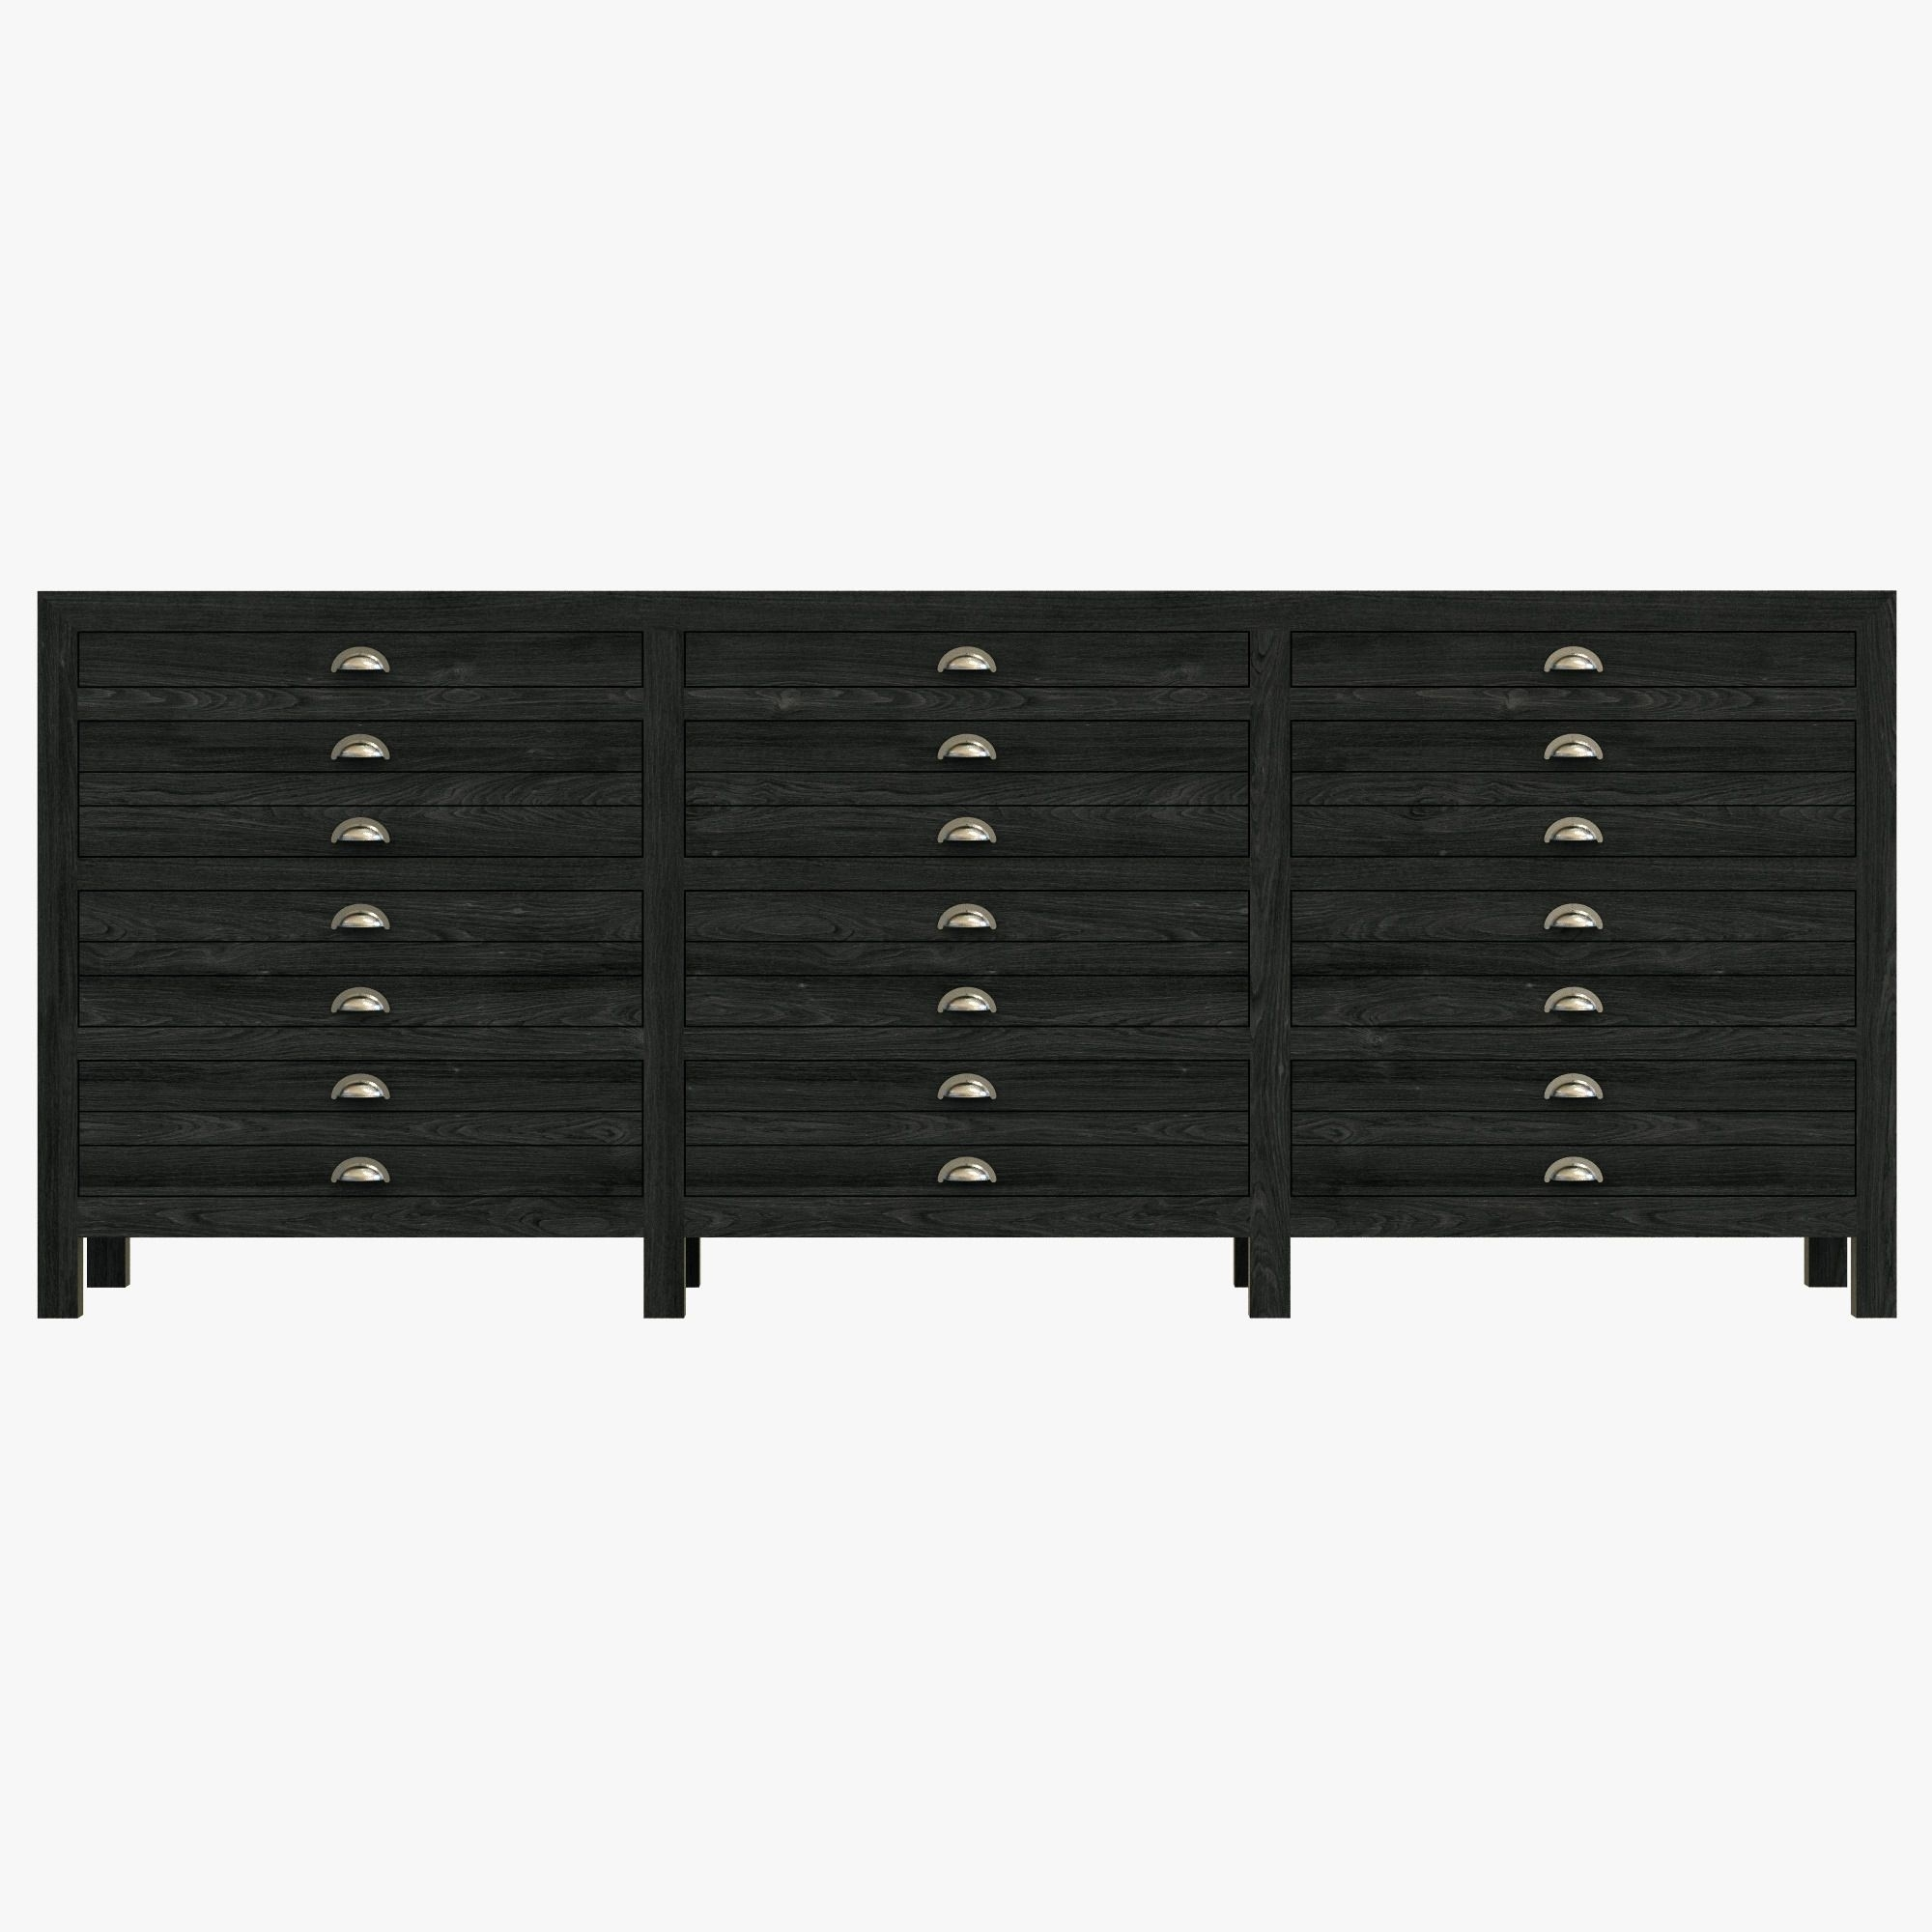 Restoration Hardware: Printmaker Sideboard - Black Pine | Current pertaining to Iron Pine Sideboards (Image 19 of 30)